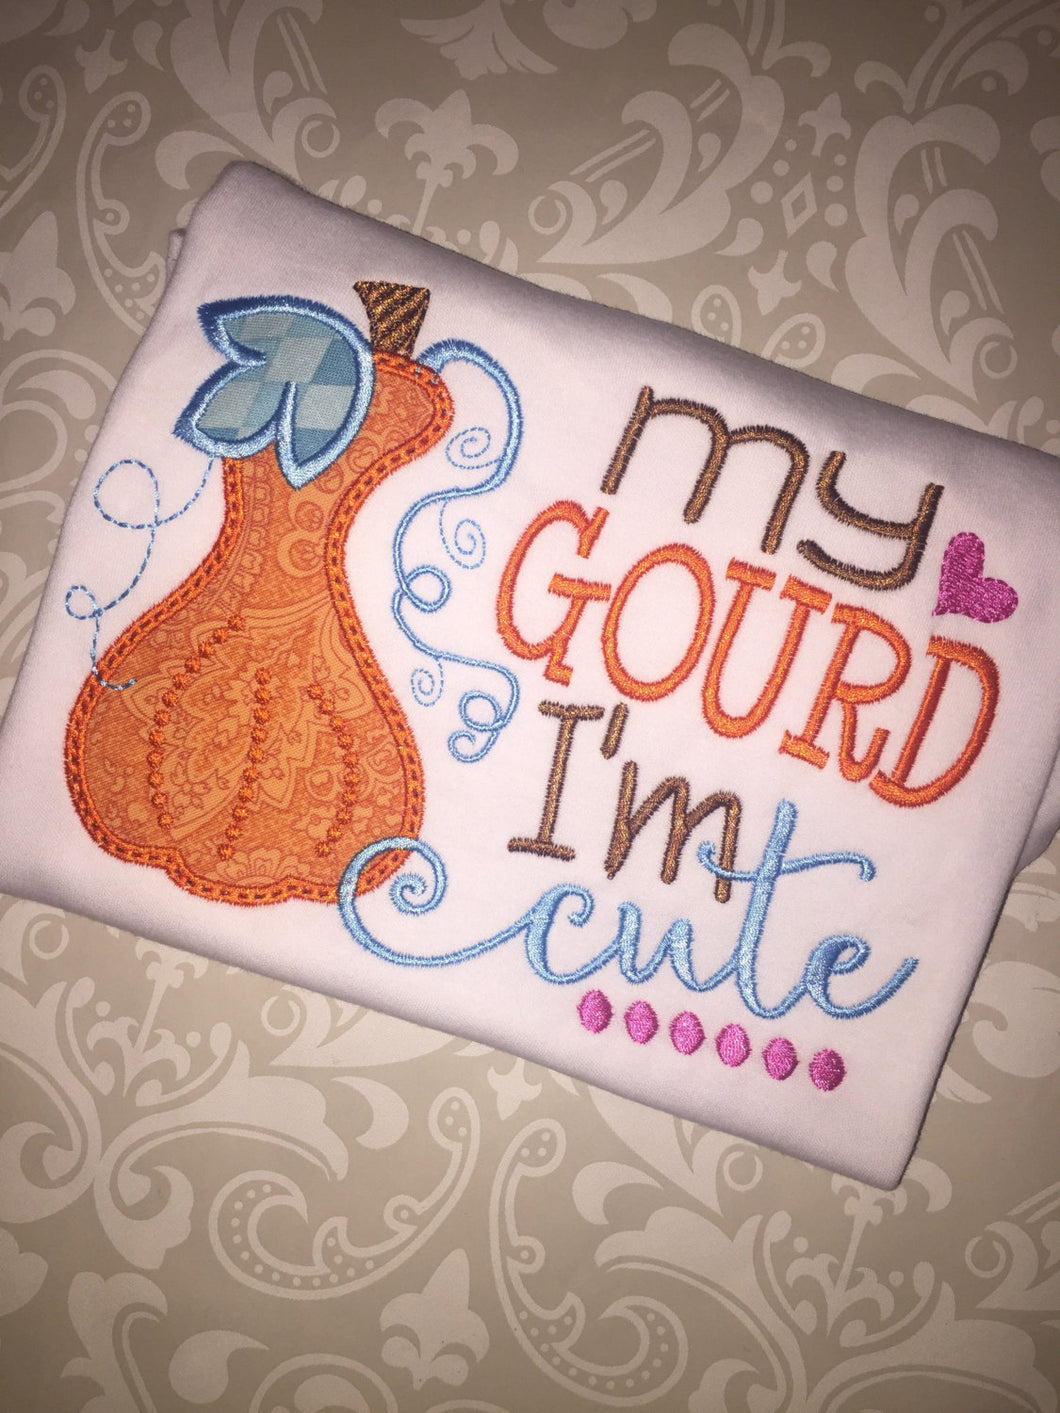 Gourd I'm Cute applique fall outfit or tee